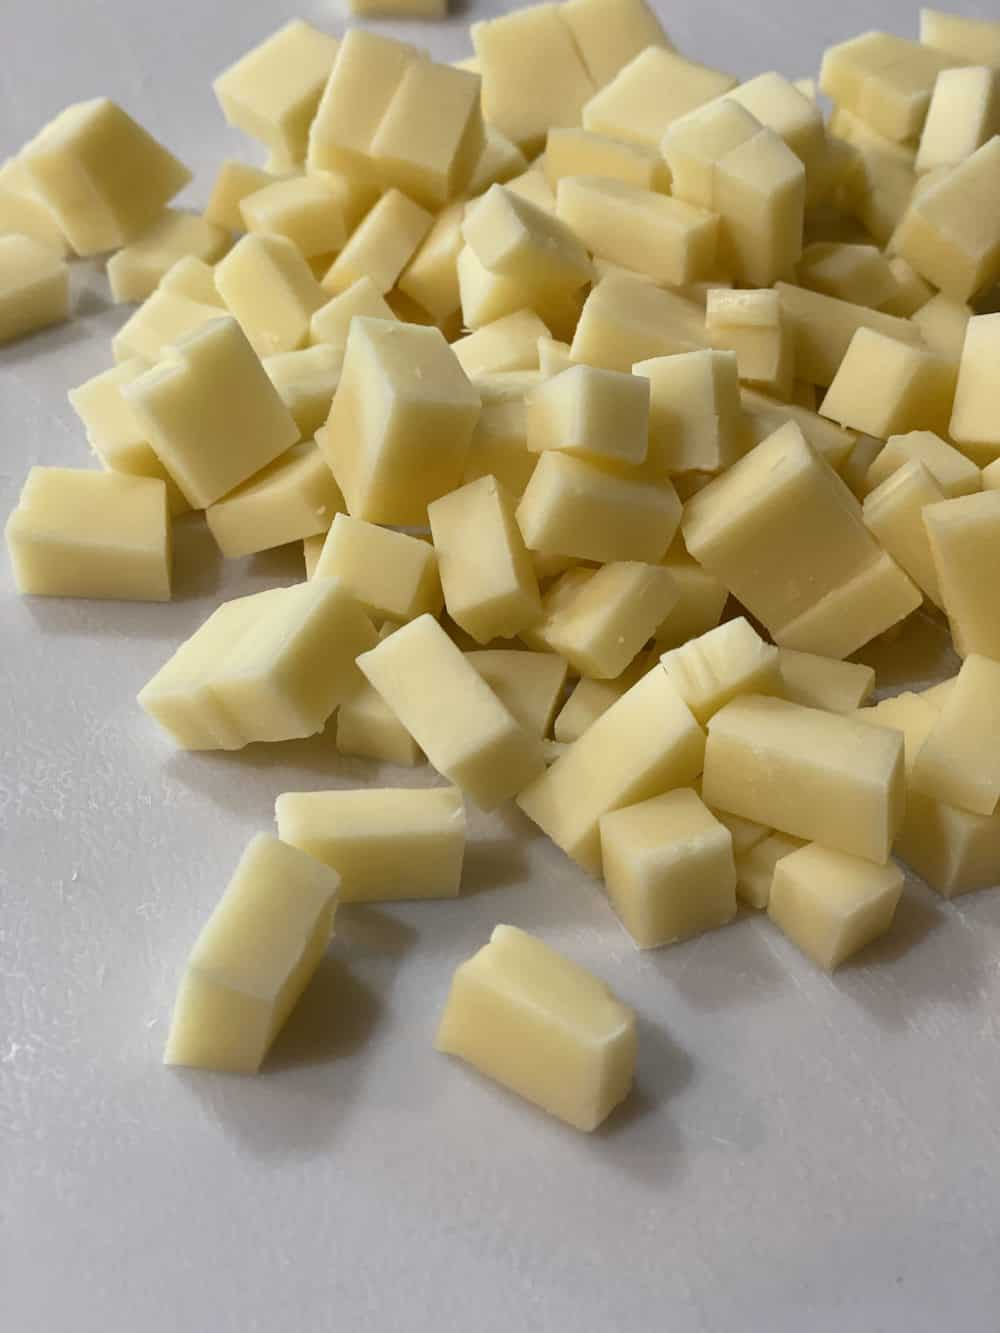 Cubes of white cheddar cheese